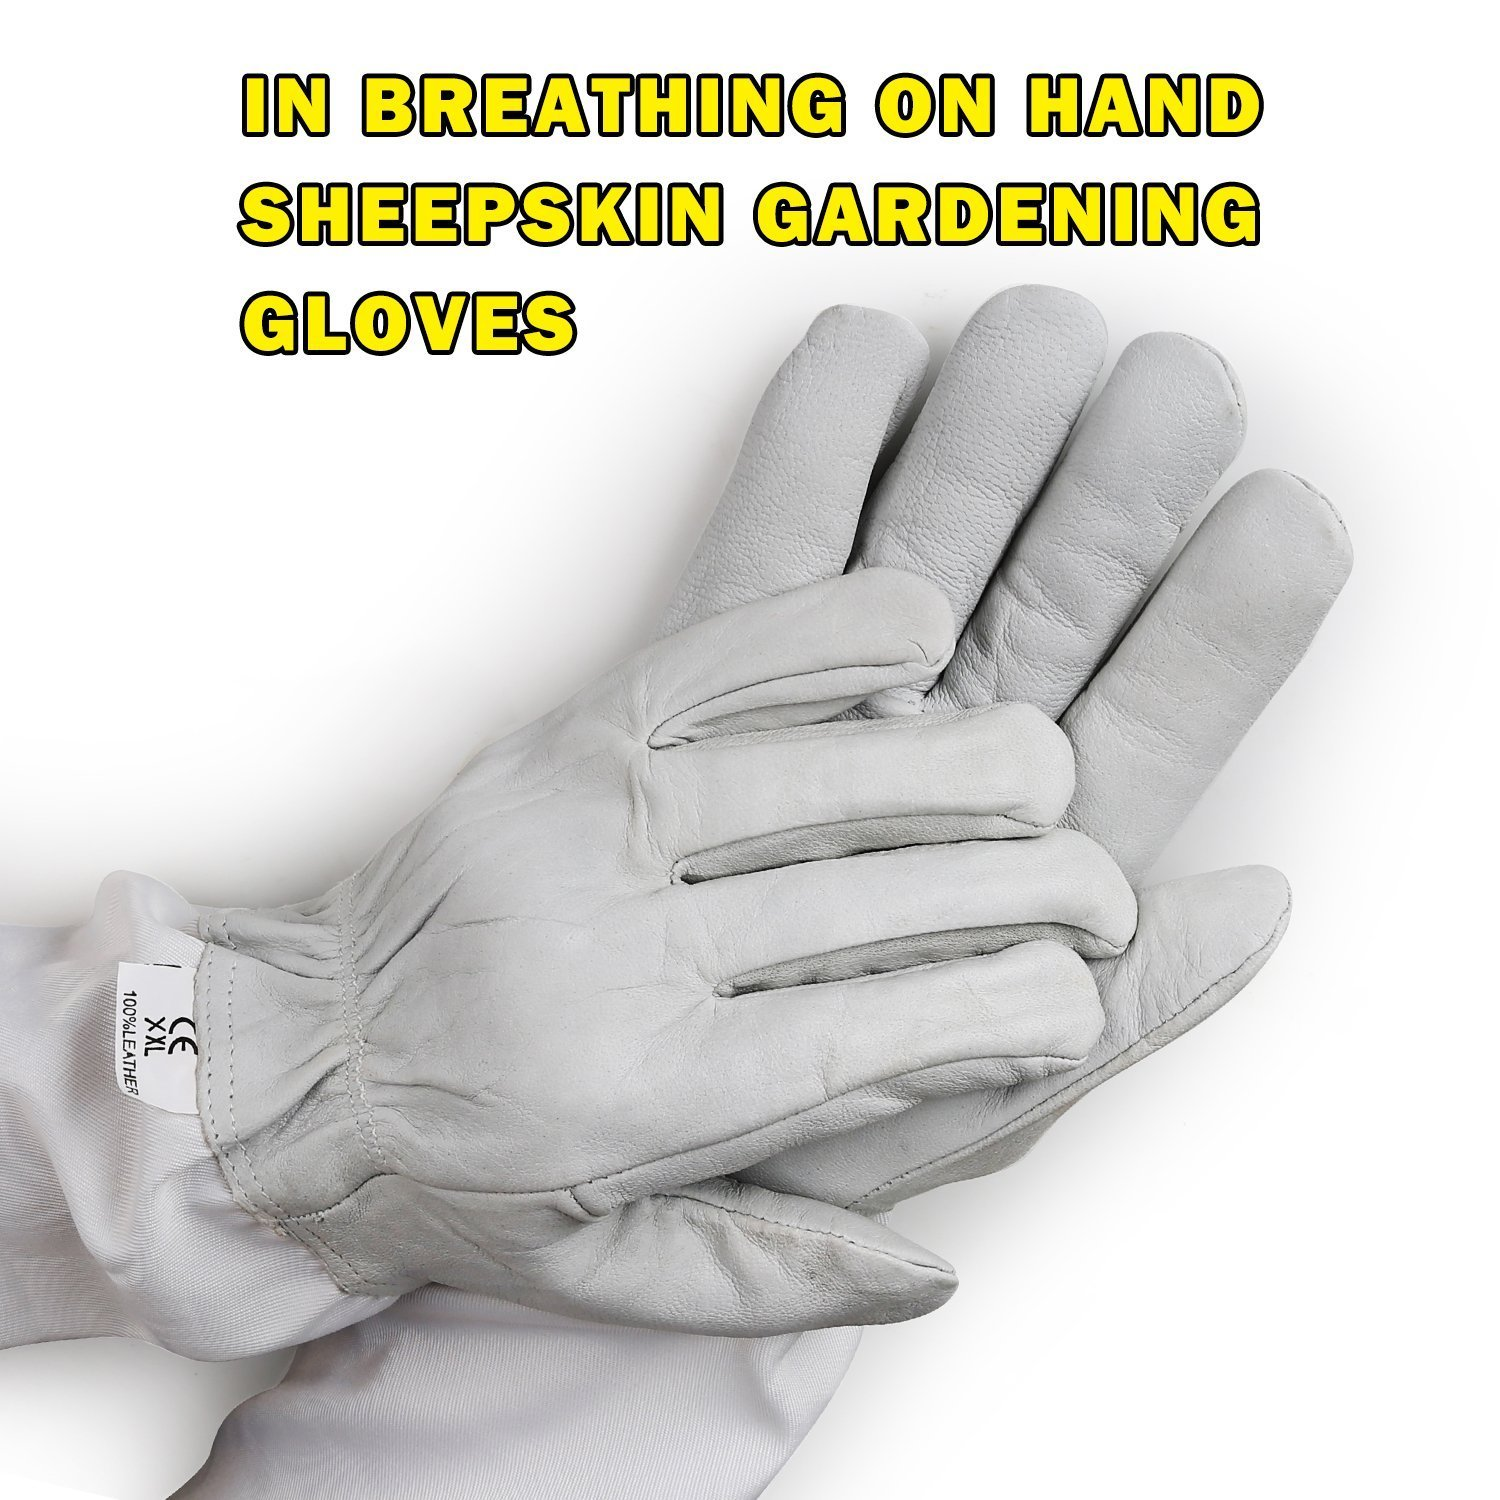 Aspectek Beekeeping Gloves, Goatskin made- XXL Size- Protective Vented Sleeves & Sting proof cuffs - durable Long Thick Sleeves VDTAZ019A